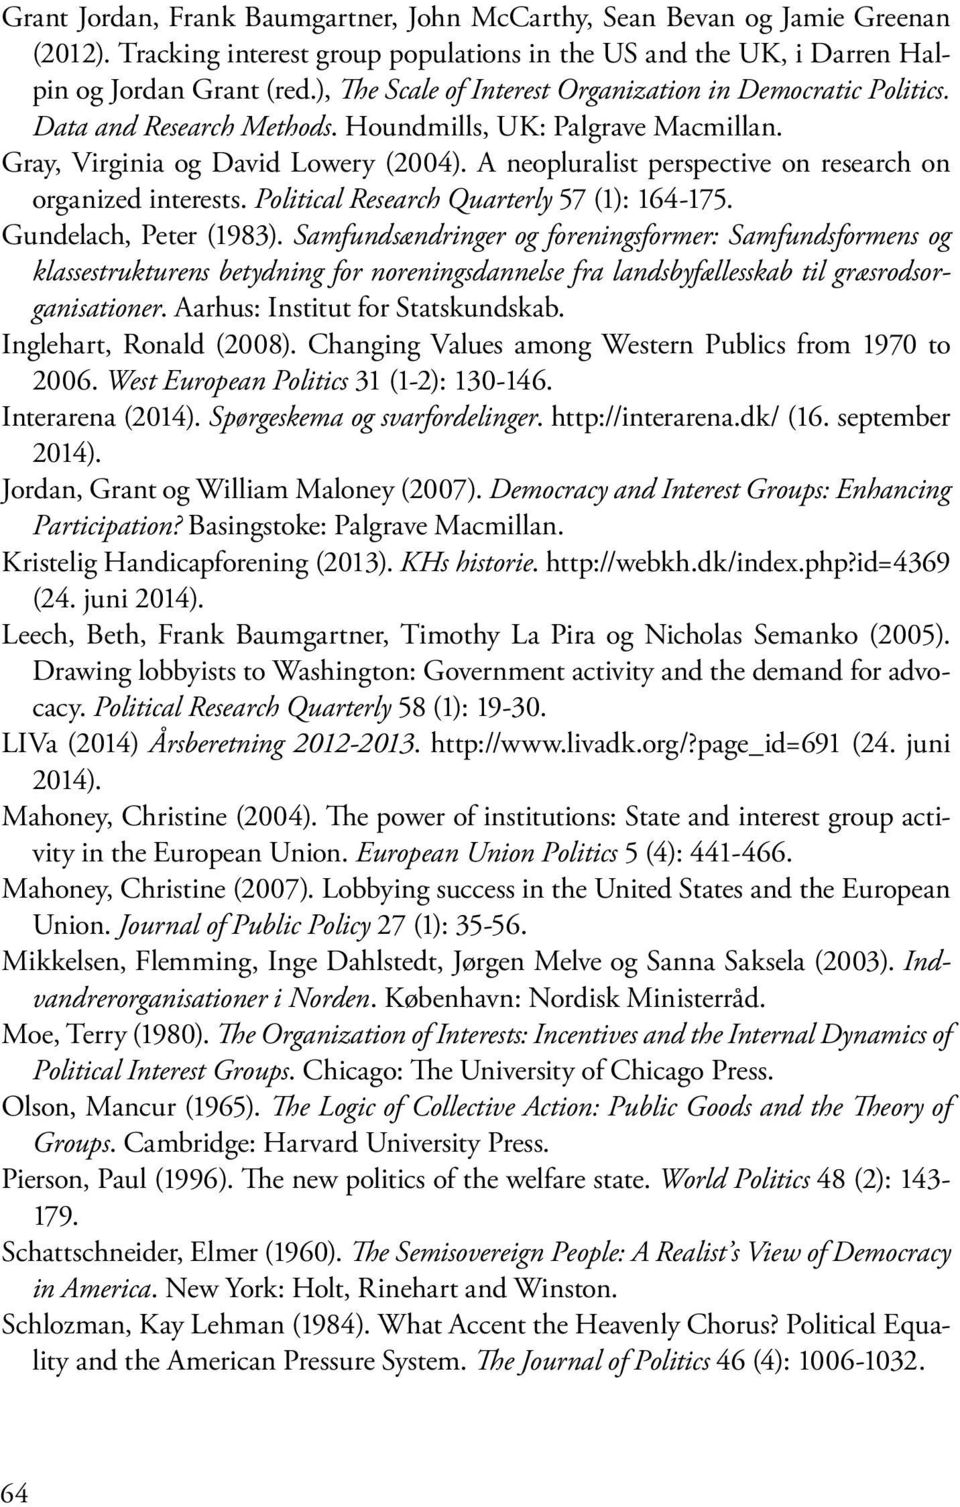 A neopluralist perspective on research on organized interests. Political Research Quarterly 57 (1): 164-175. Gundelach, Peter (1983).